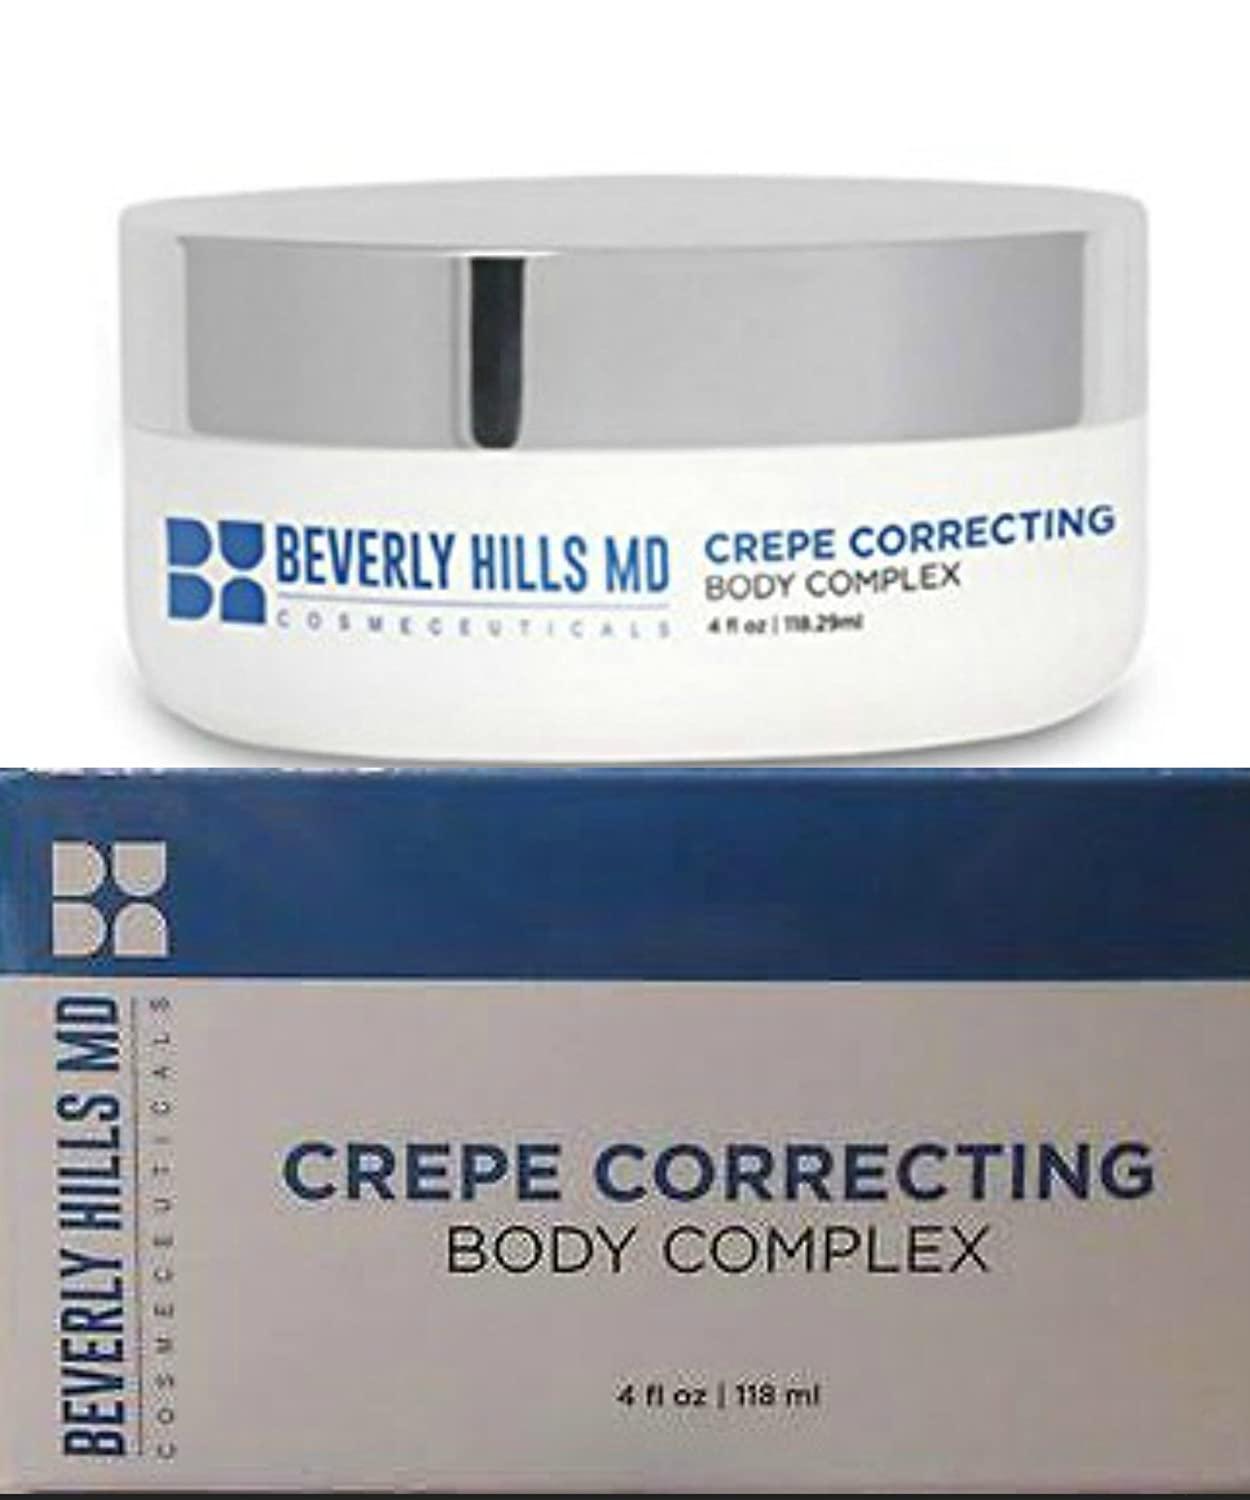 coupon code for beverly hills md cream